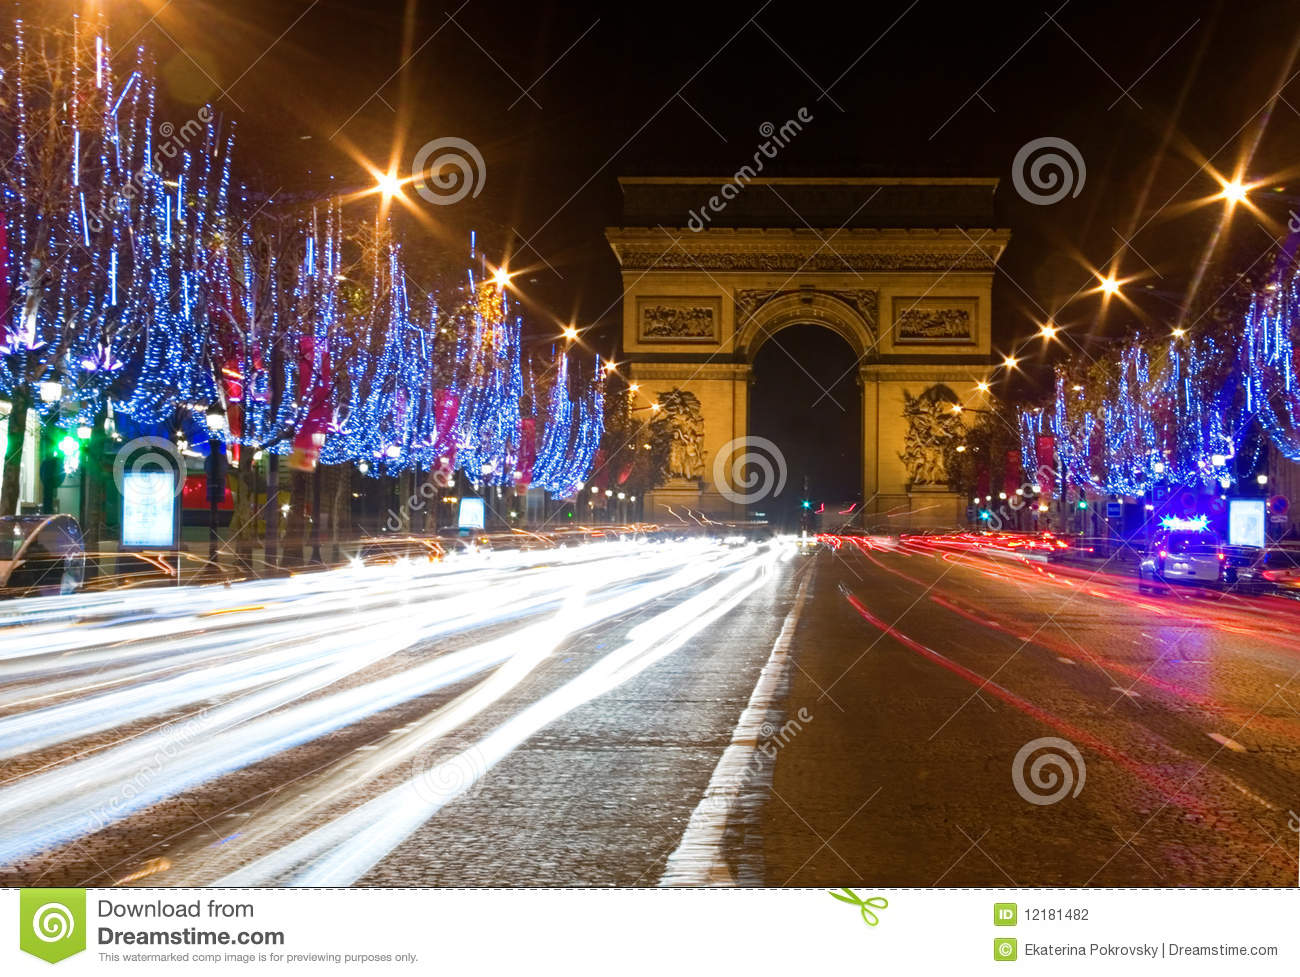 Night view of the Champs-Elysees